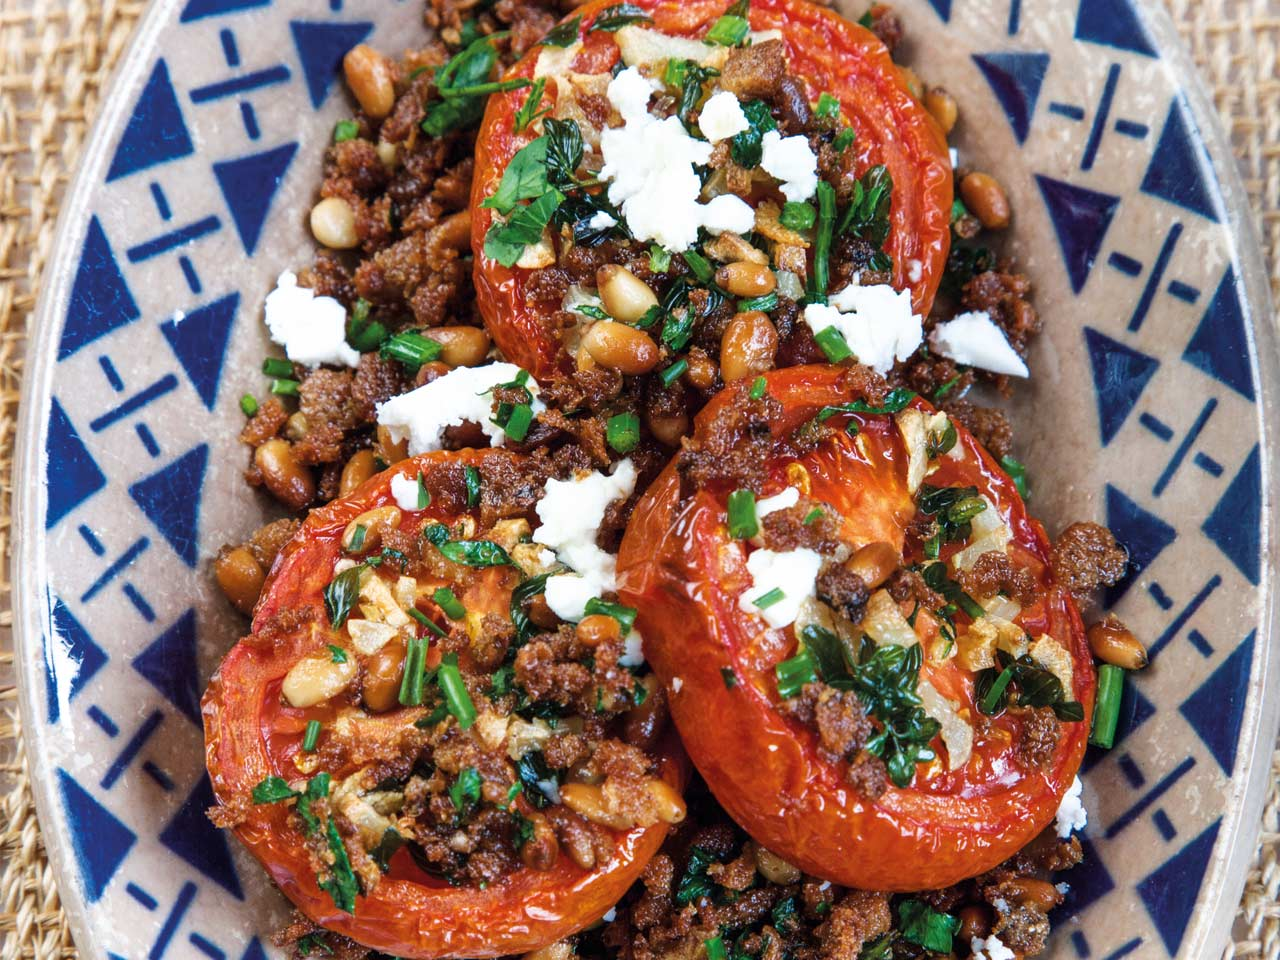 Tonia Buxton's slow-roasted tomato salad